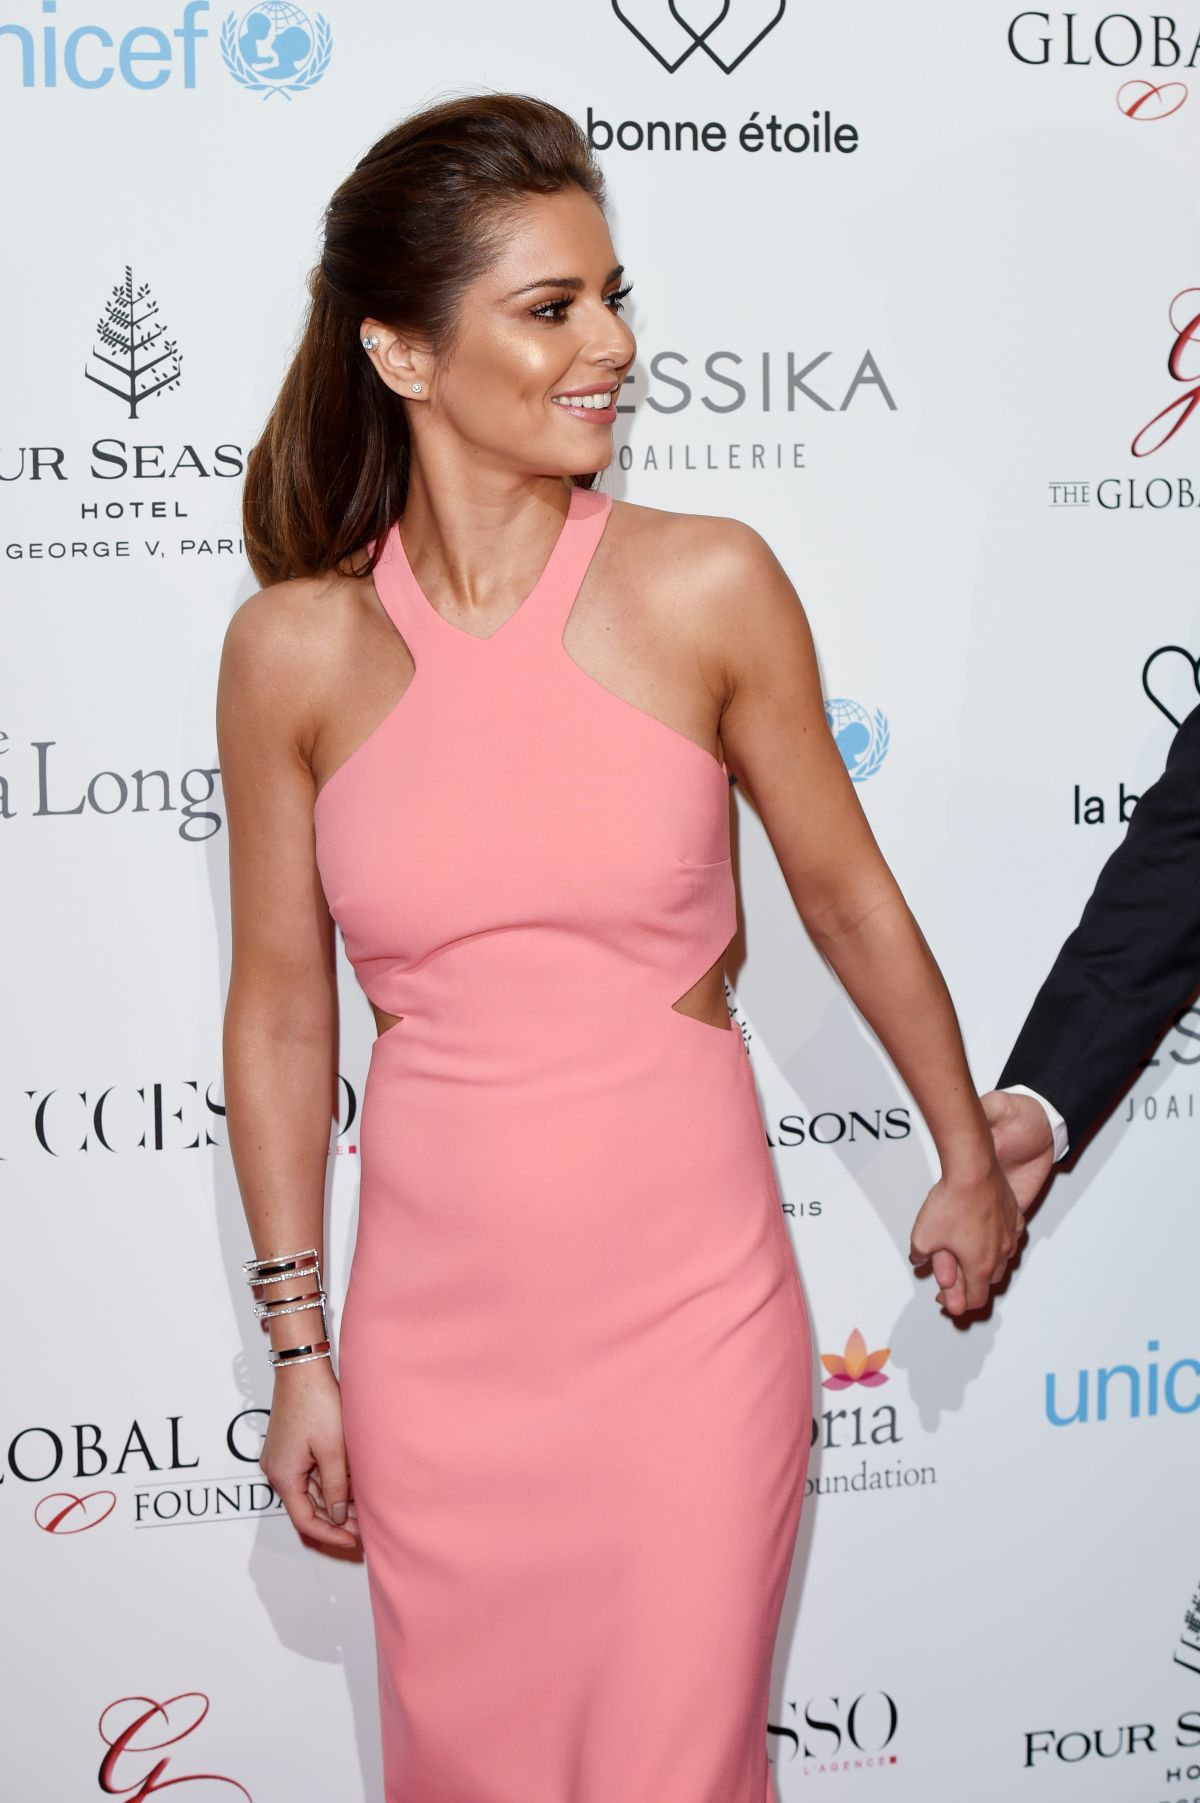 CHERYL COLE at Global Gift Gala in Paris 05/09/2016